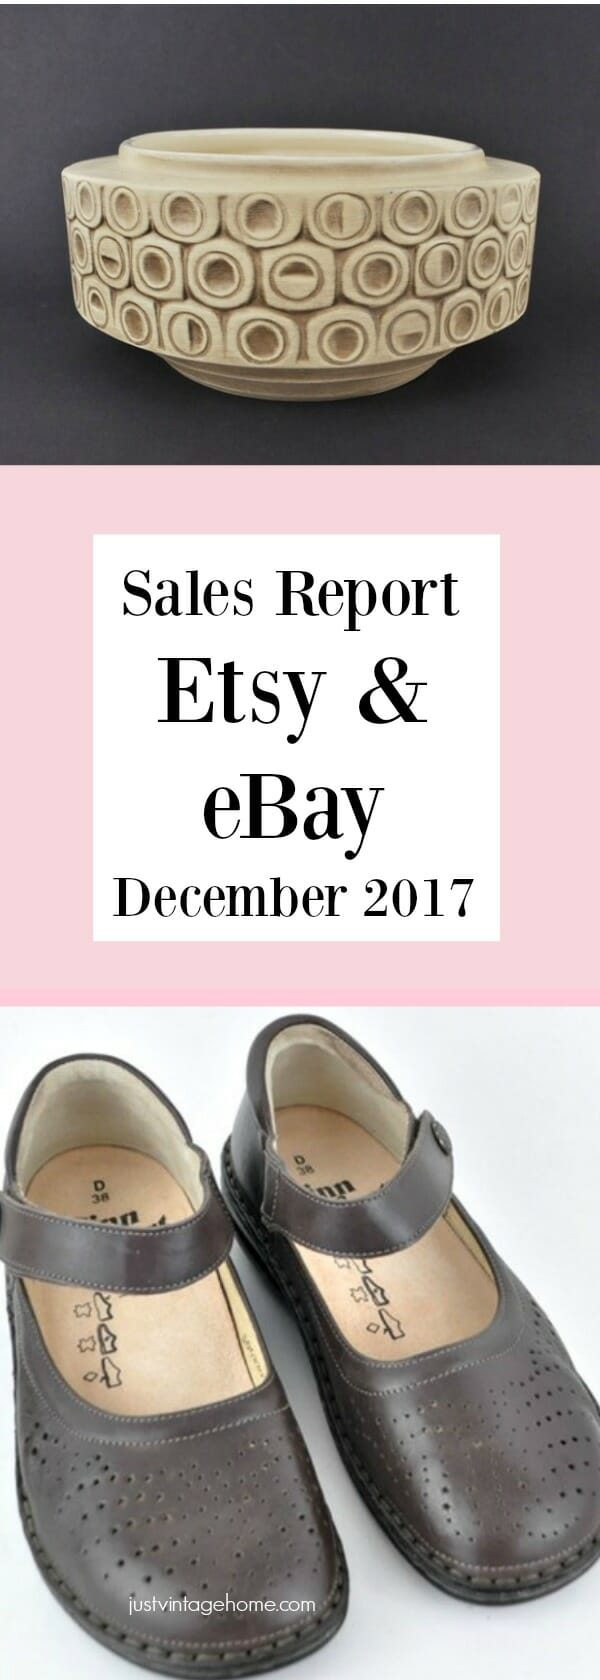 Booth and Etsy Sales Report for December 2017